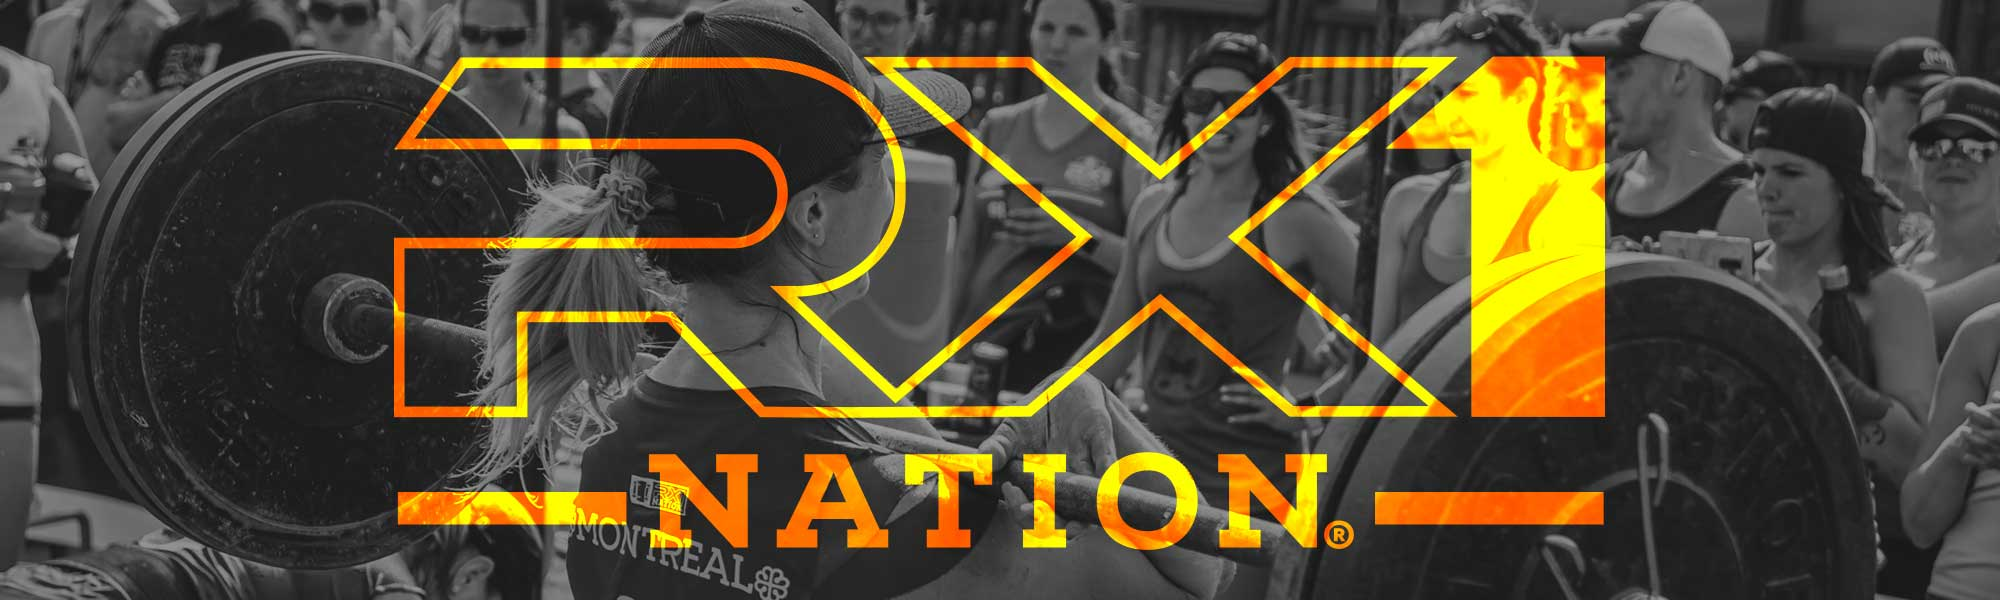 RX-1 Nation